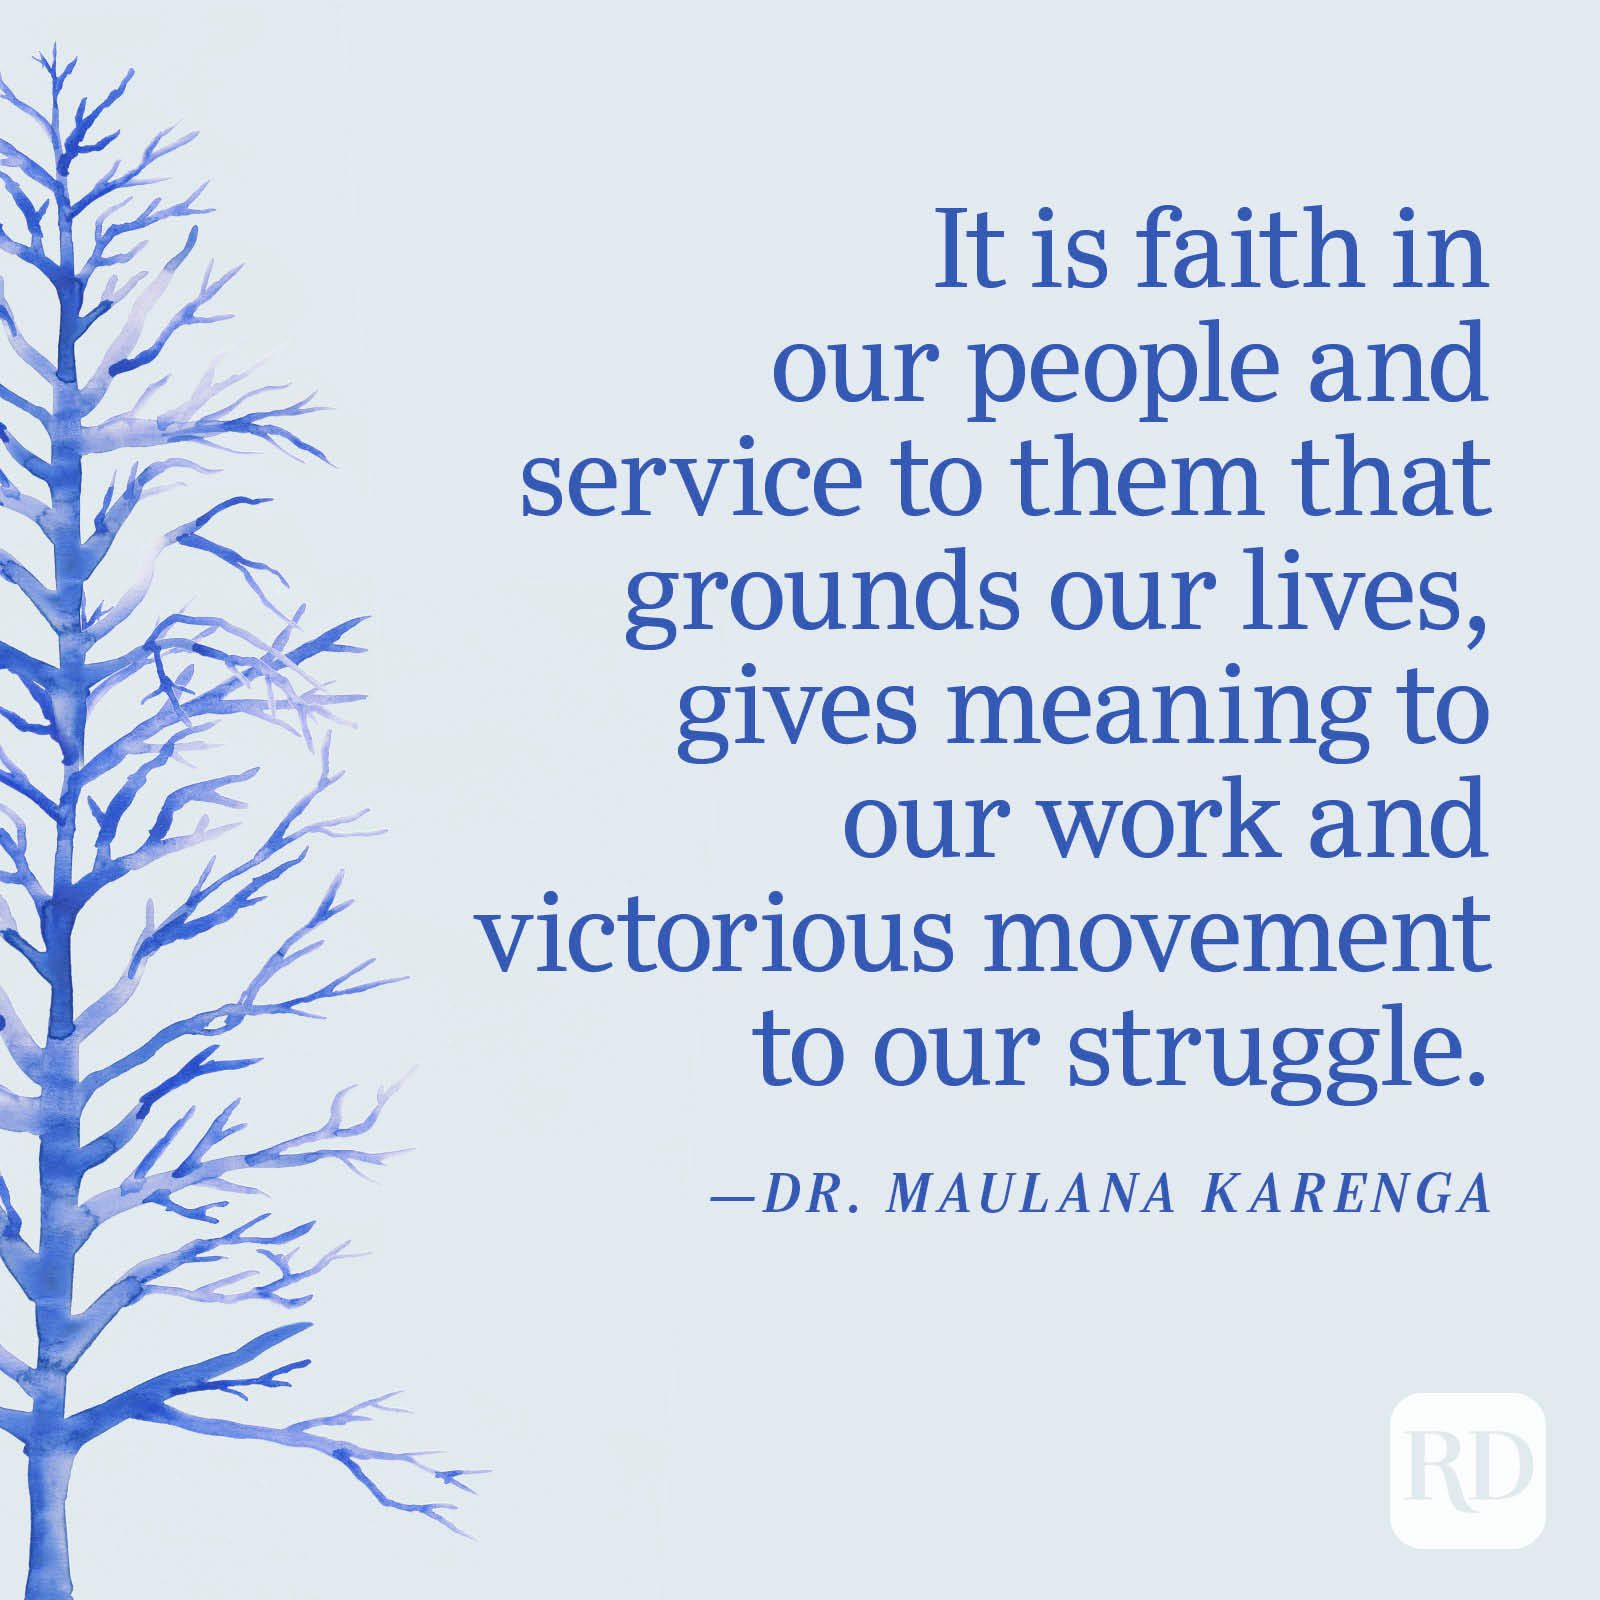 """""""It is faith in our people and service to them that grounds our lives, gives meaning to our work and victorious movement to our struggle."""" —Dr. Maulana Karenga"""